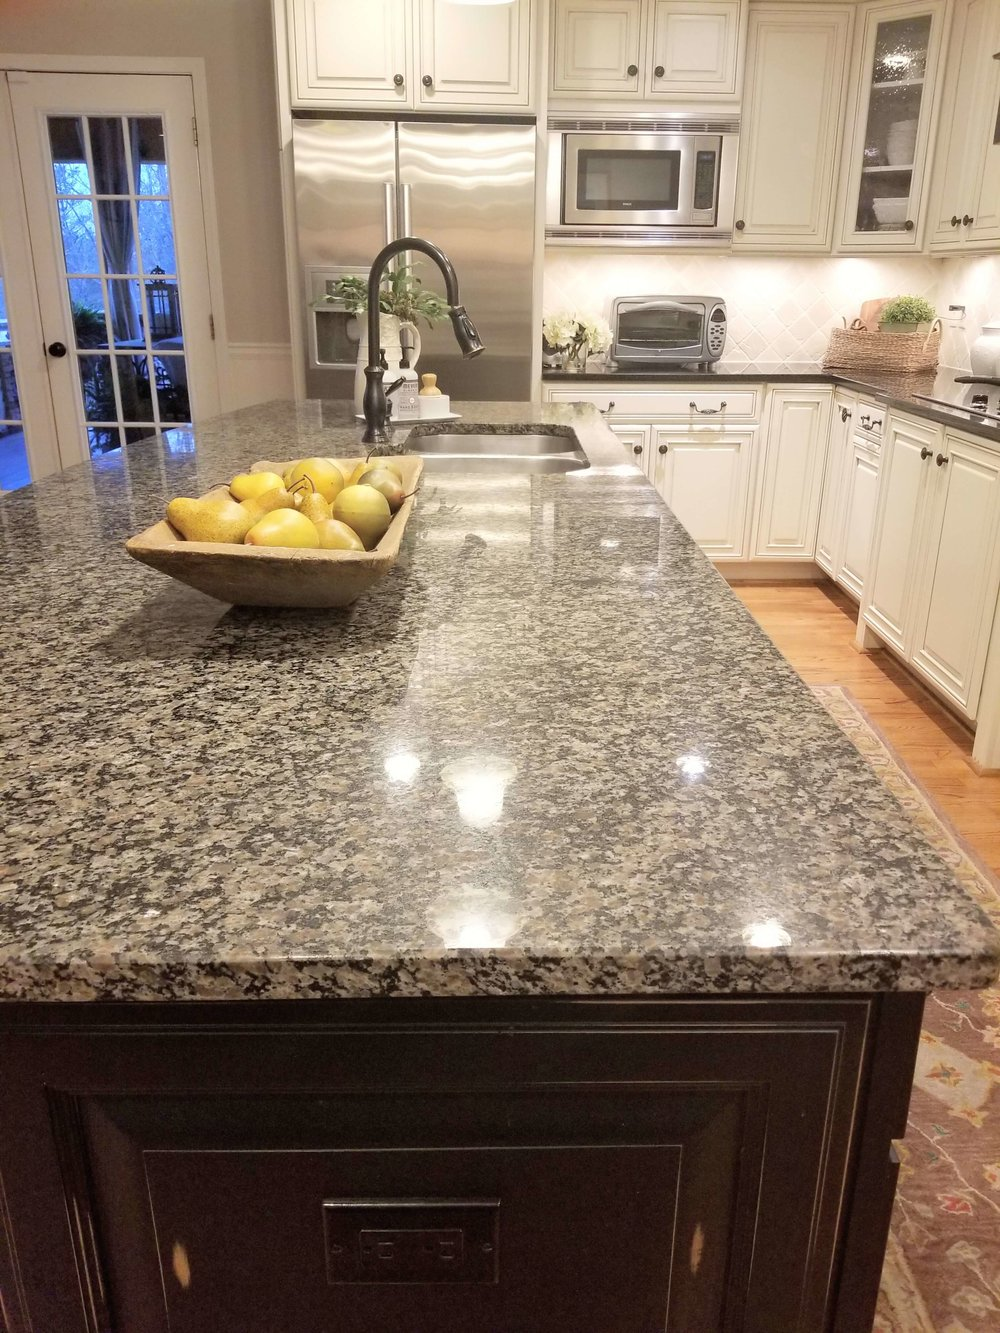 BEFORE - Spotty granite on the kitchen island